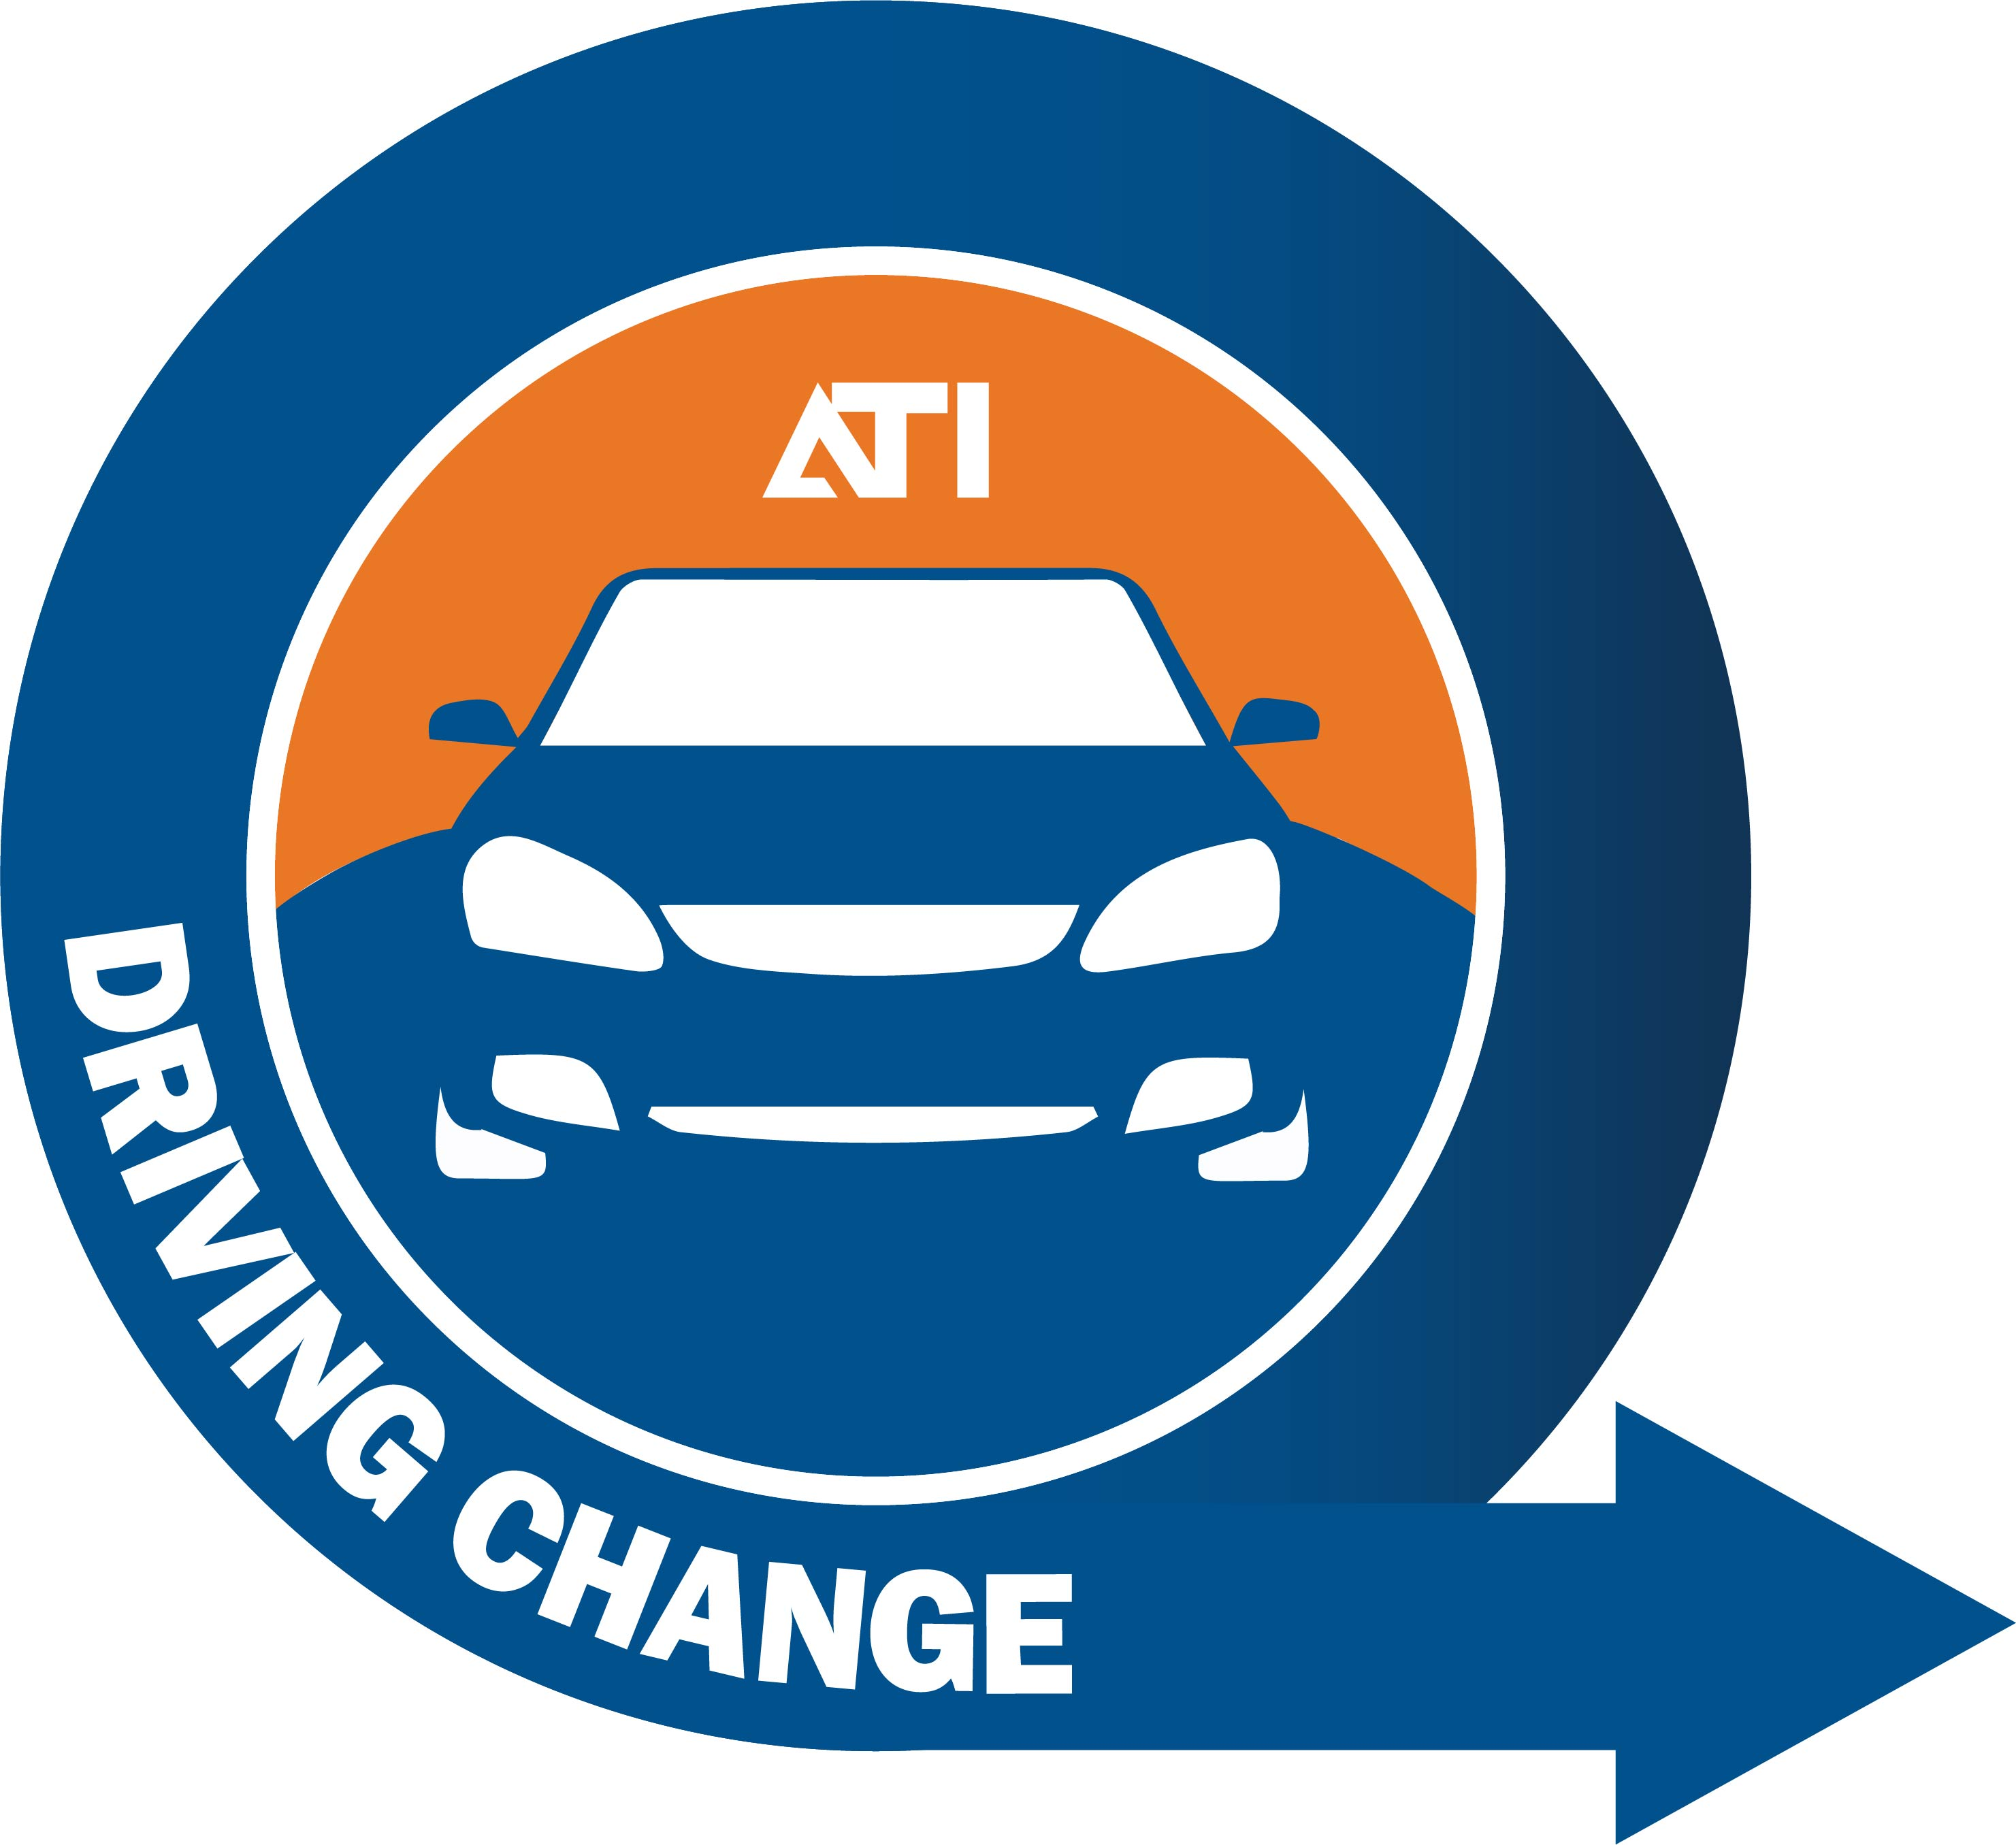 07 - Get things done - Driving Change for ATI Podcast - Bryan Jewett